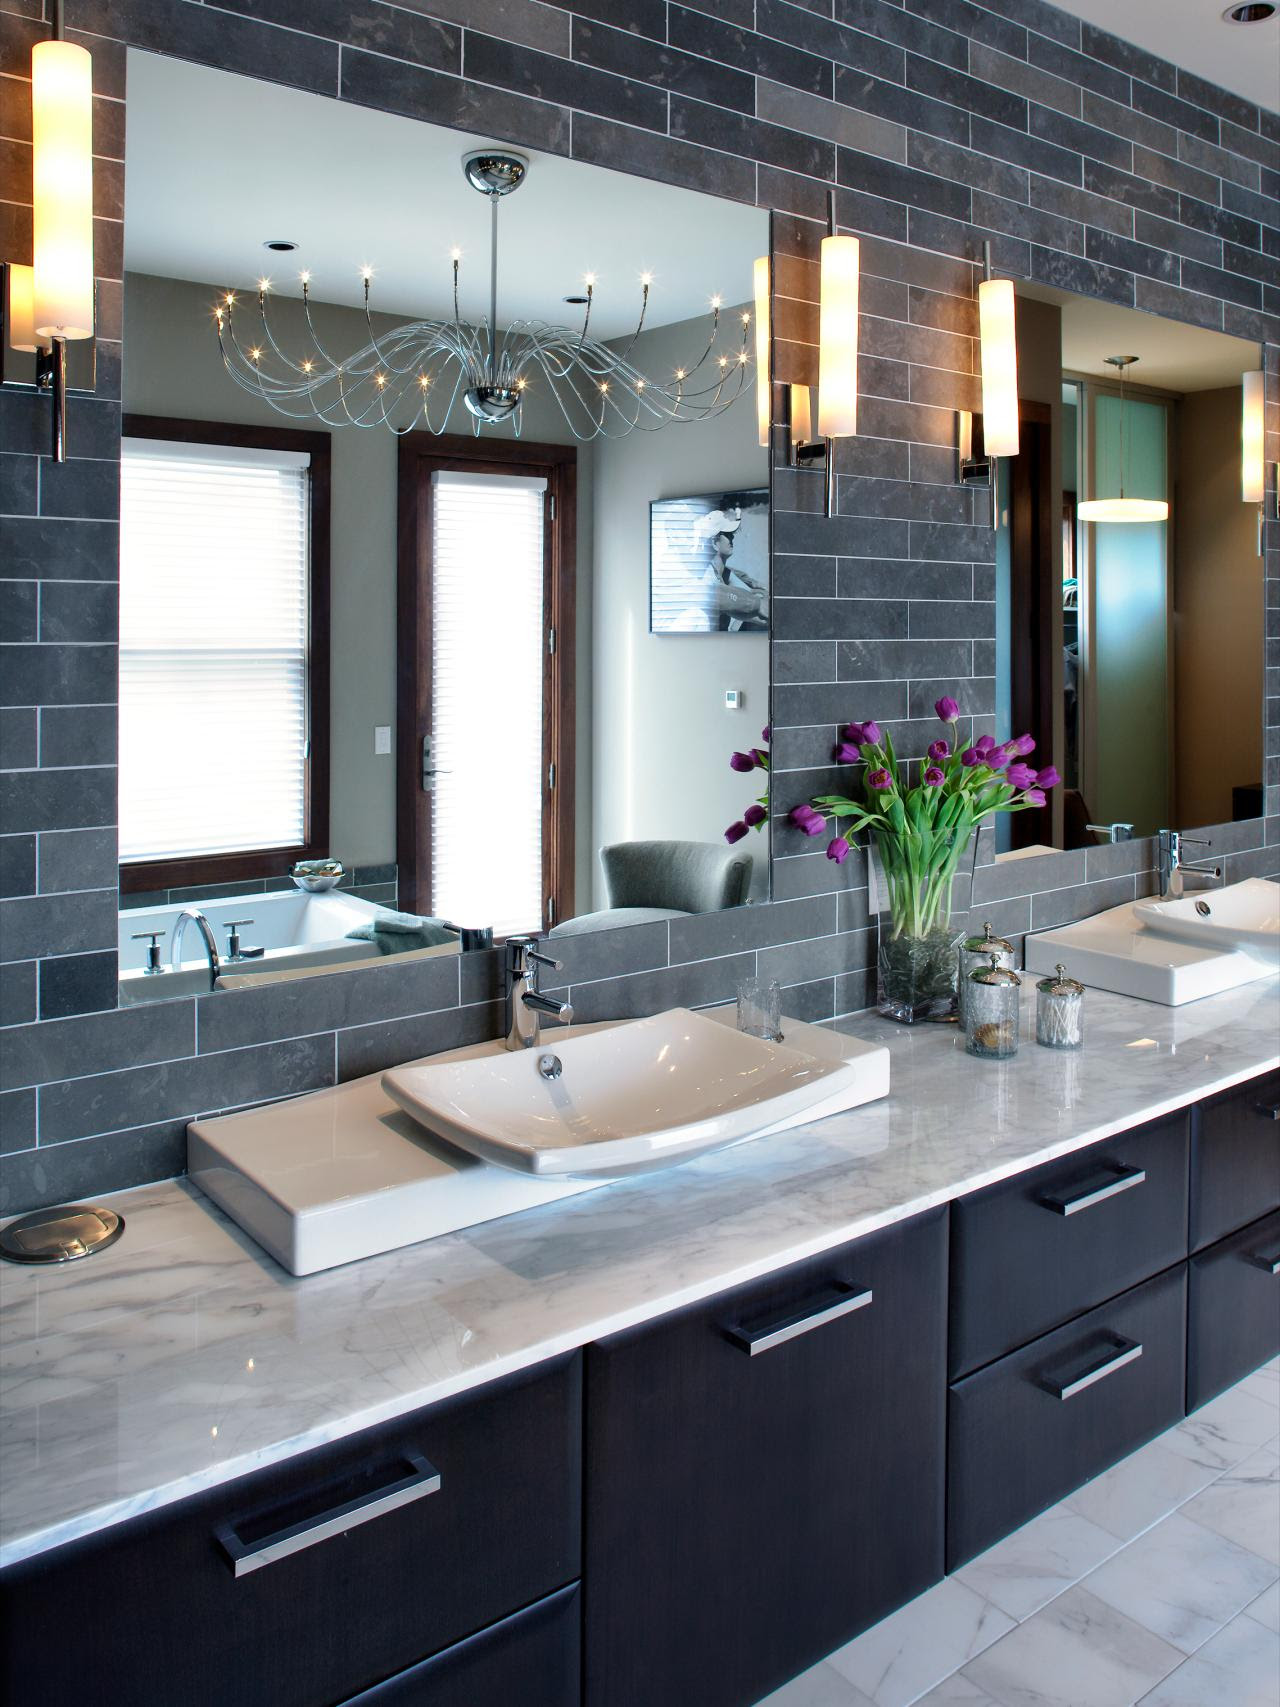 9 Bold Bathroom Tile Designs | HGTV's Decorating & Design ...